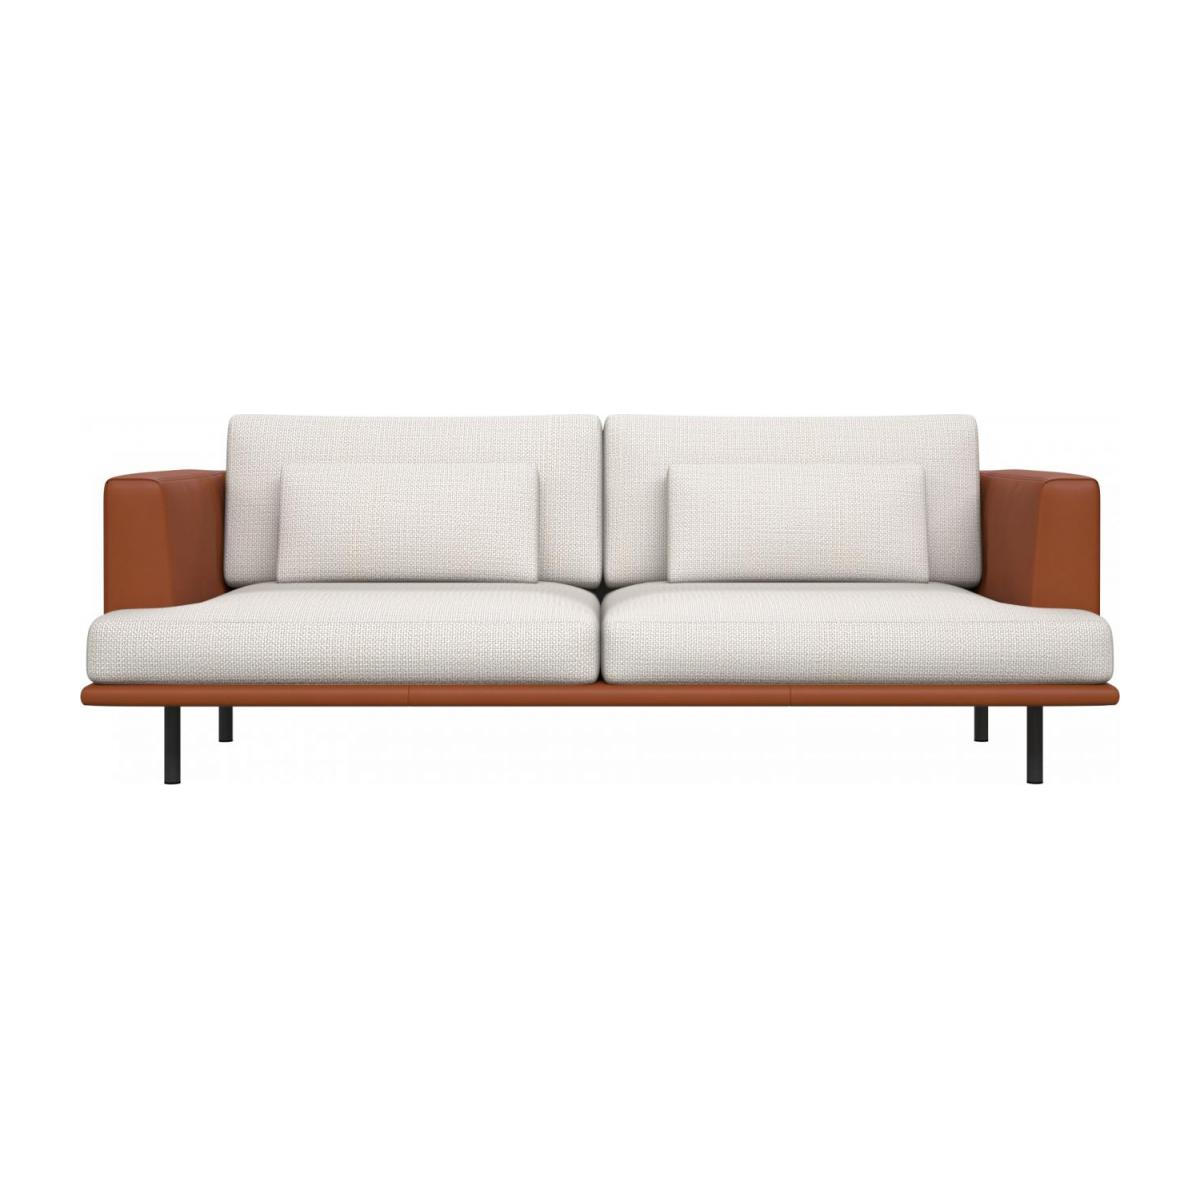 3 seater sofa in Fasoli fabric, snow white with base and armrests in brown leather n°3